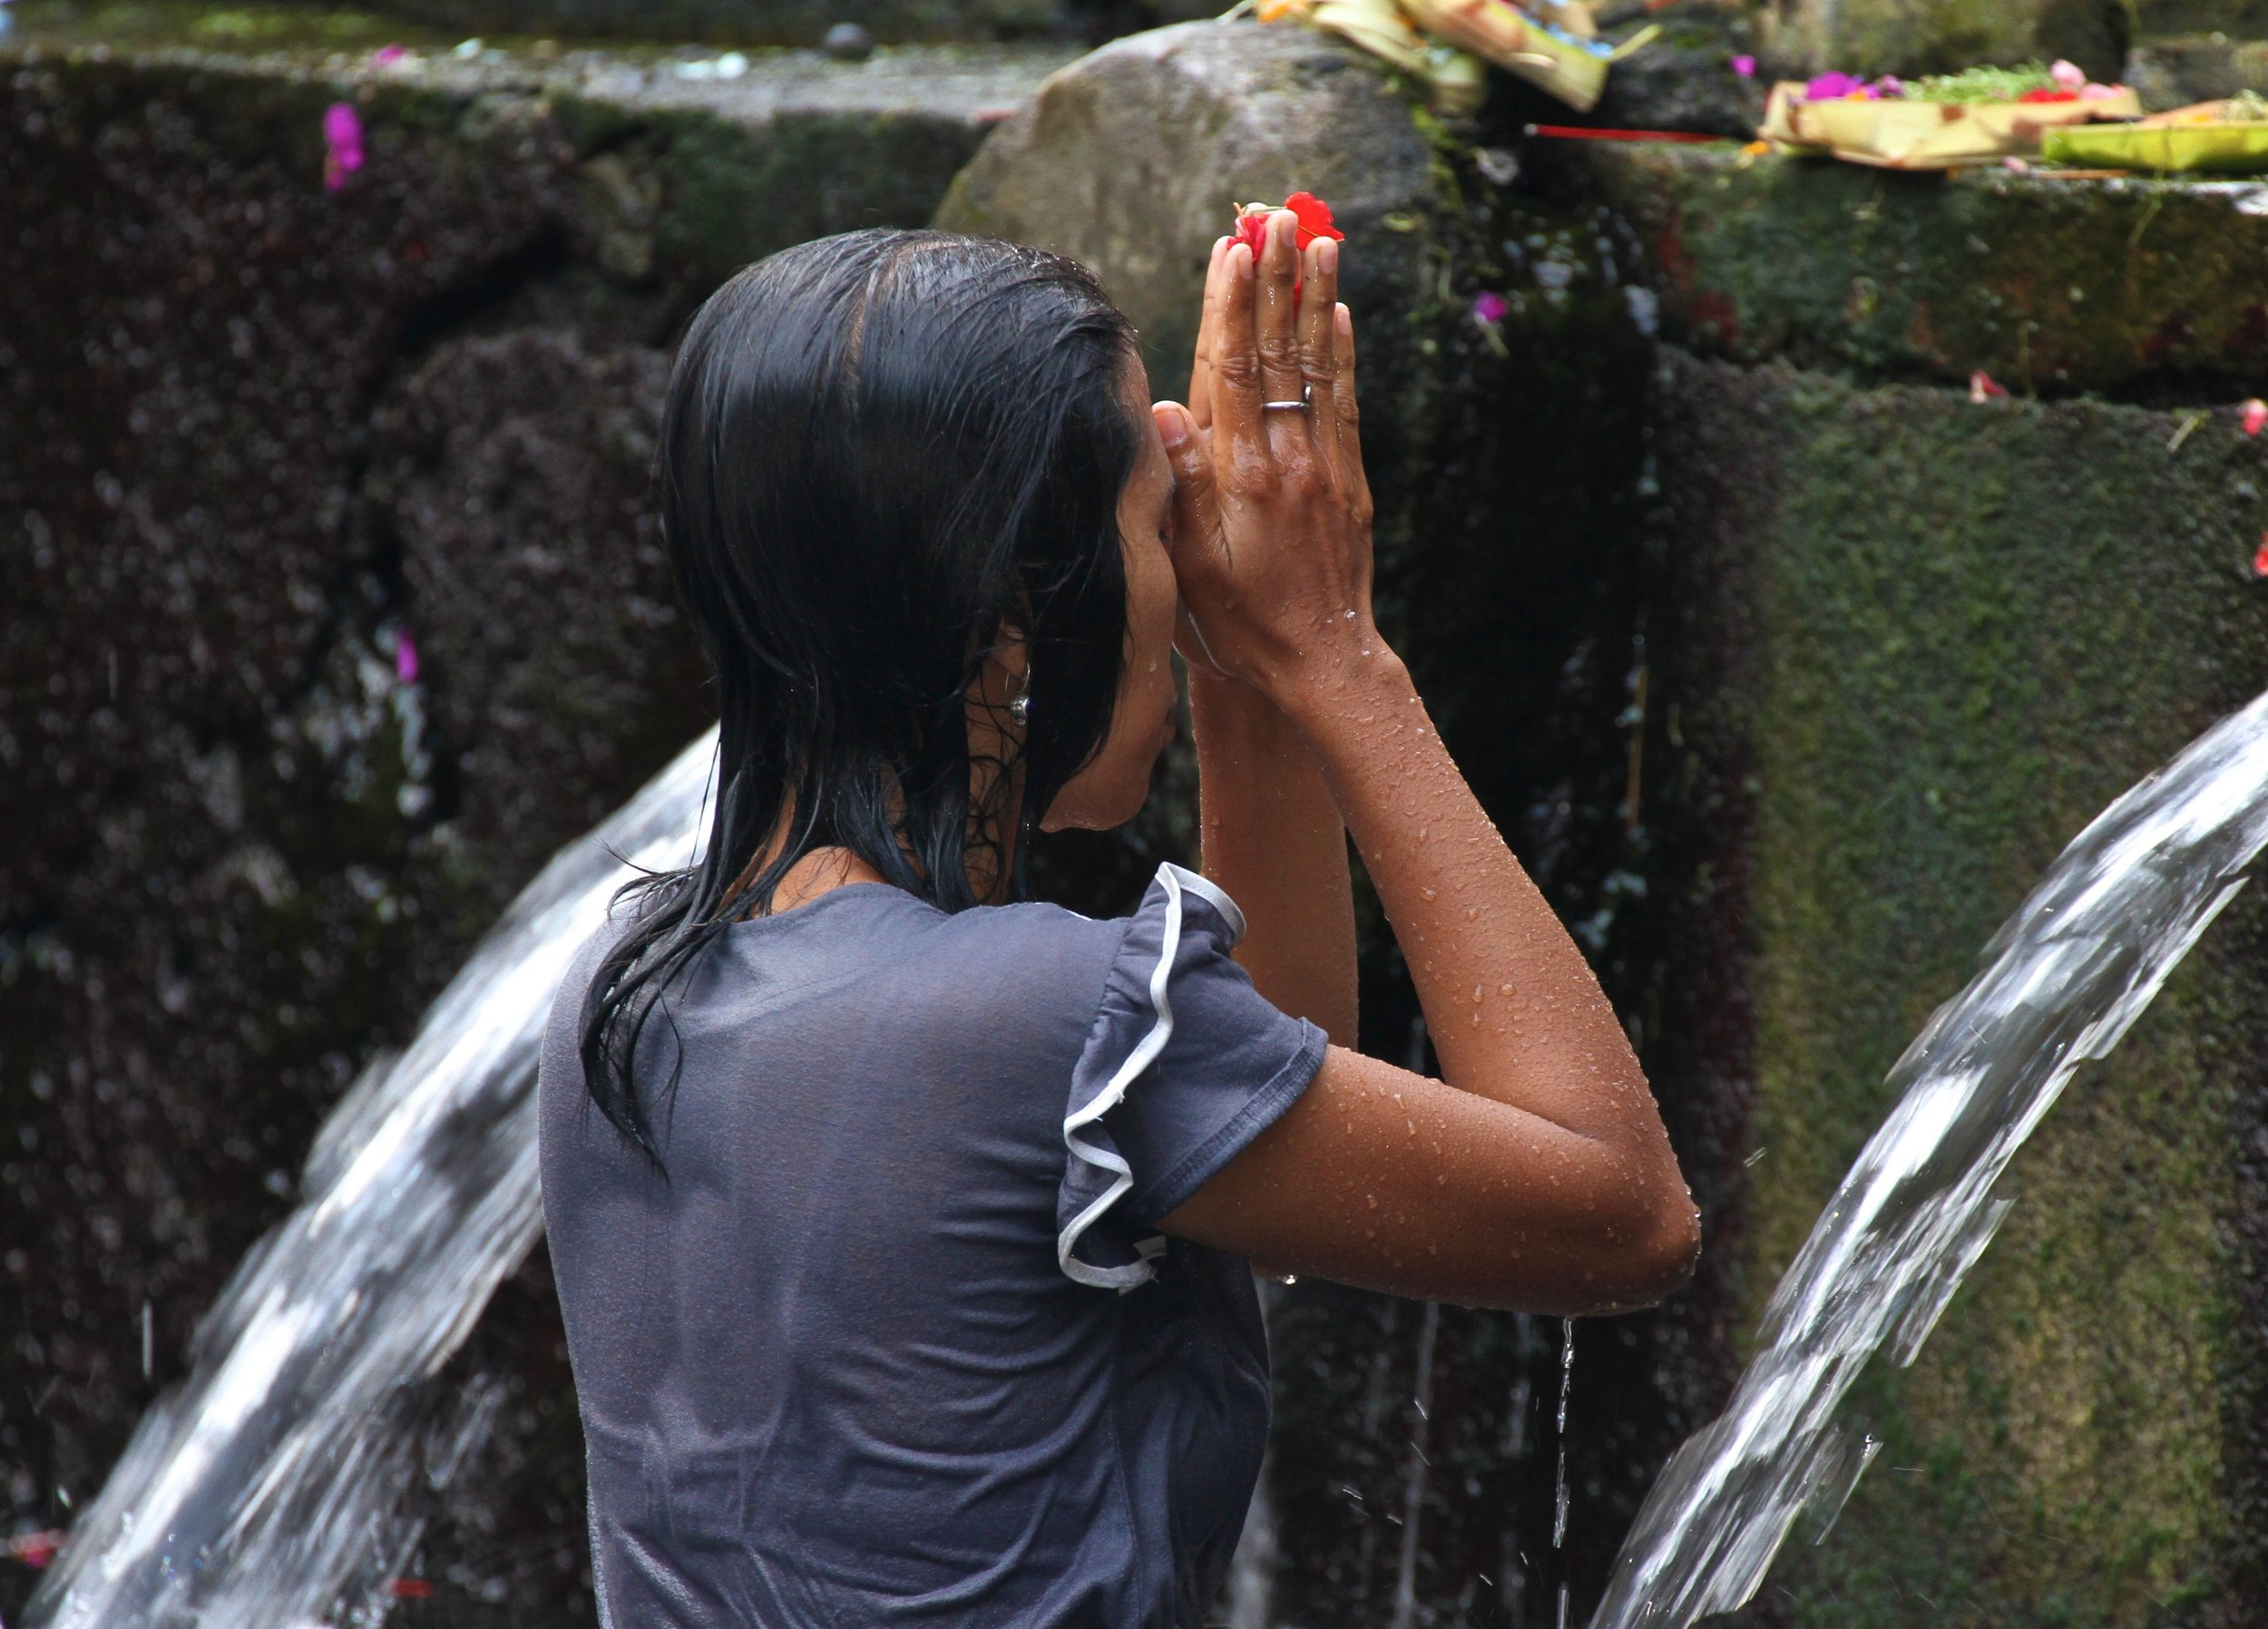 Ritual and Prayer in Water  In Bali, there are sacred cites where prayer is done in and to the water.  I want to partake and capture these precious moments. Bali  In conversations    JOIN